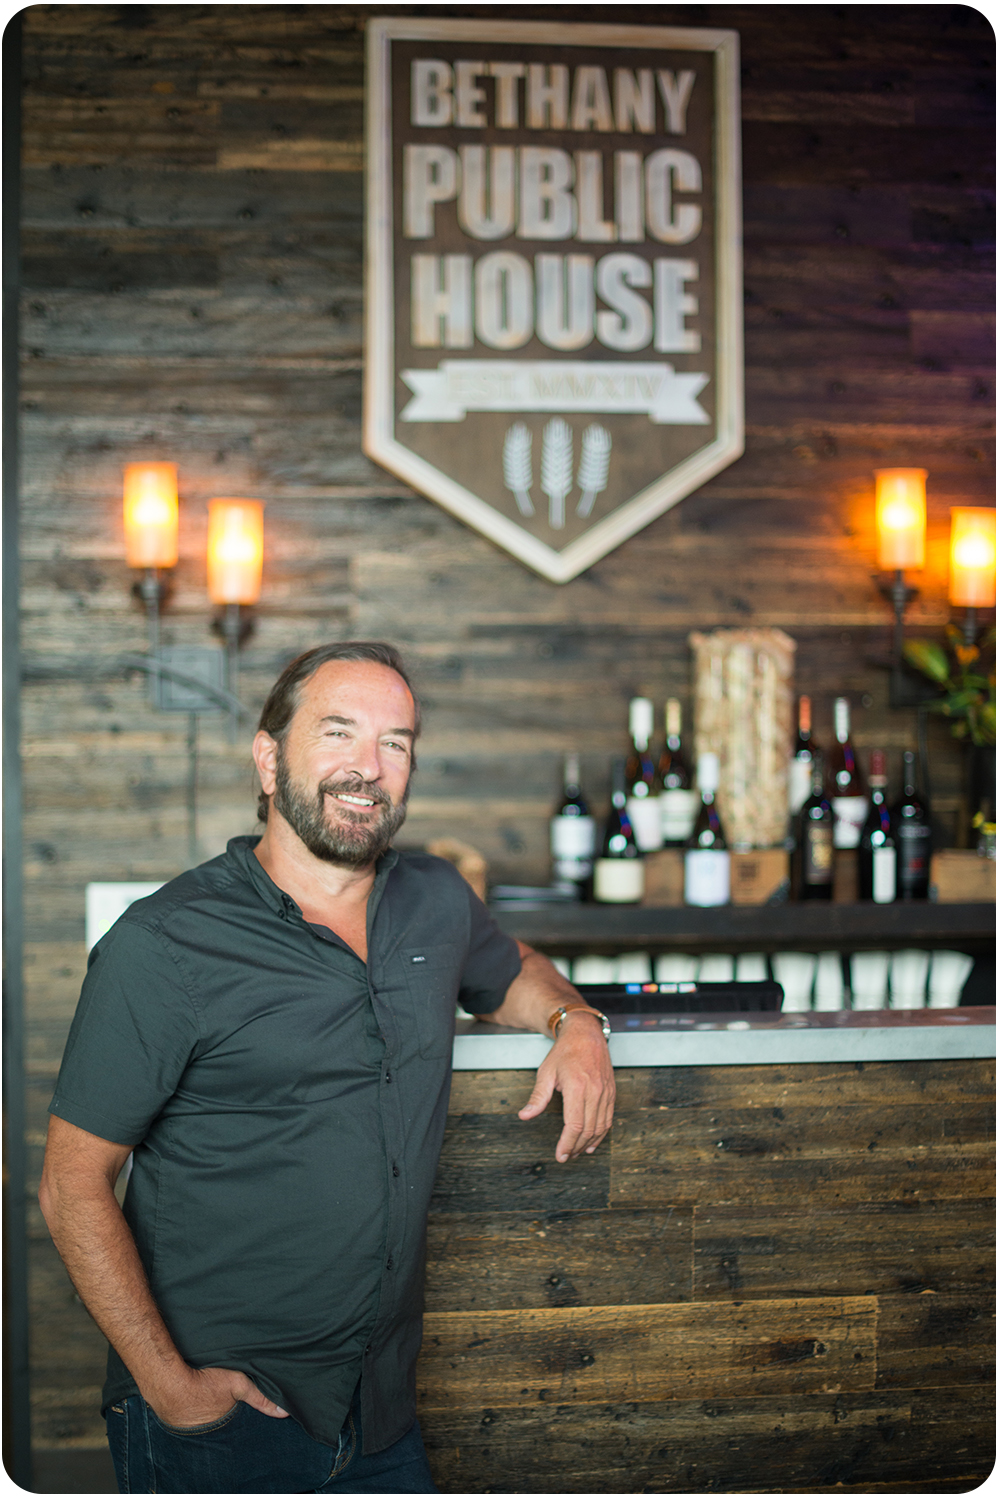 Bethany Public House owner Andre Jehan